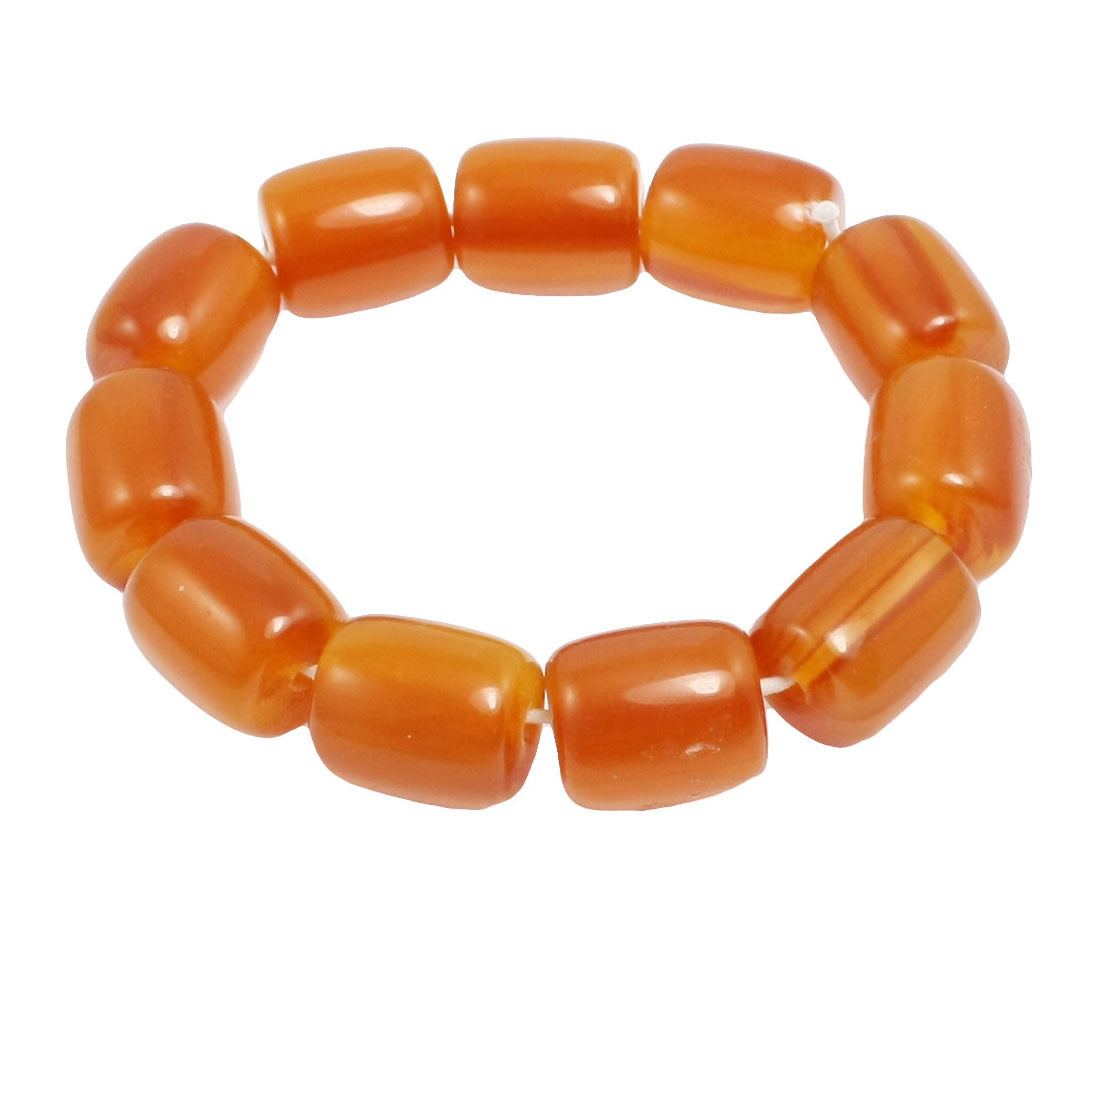 Lady Girl Elastic Wrist Band Amber Plastic Beaded Bracelet Bangle